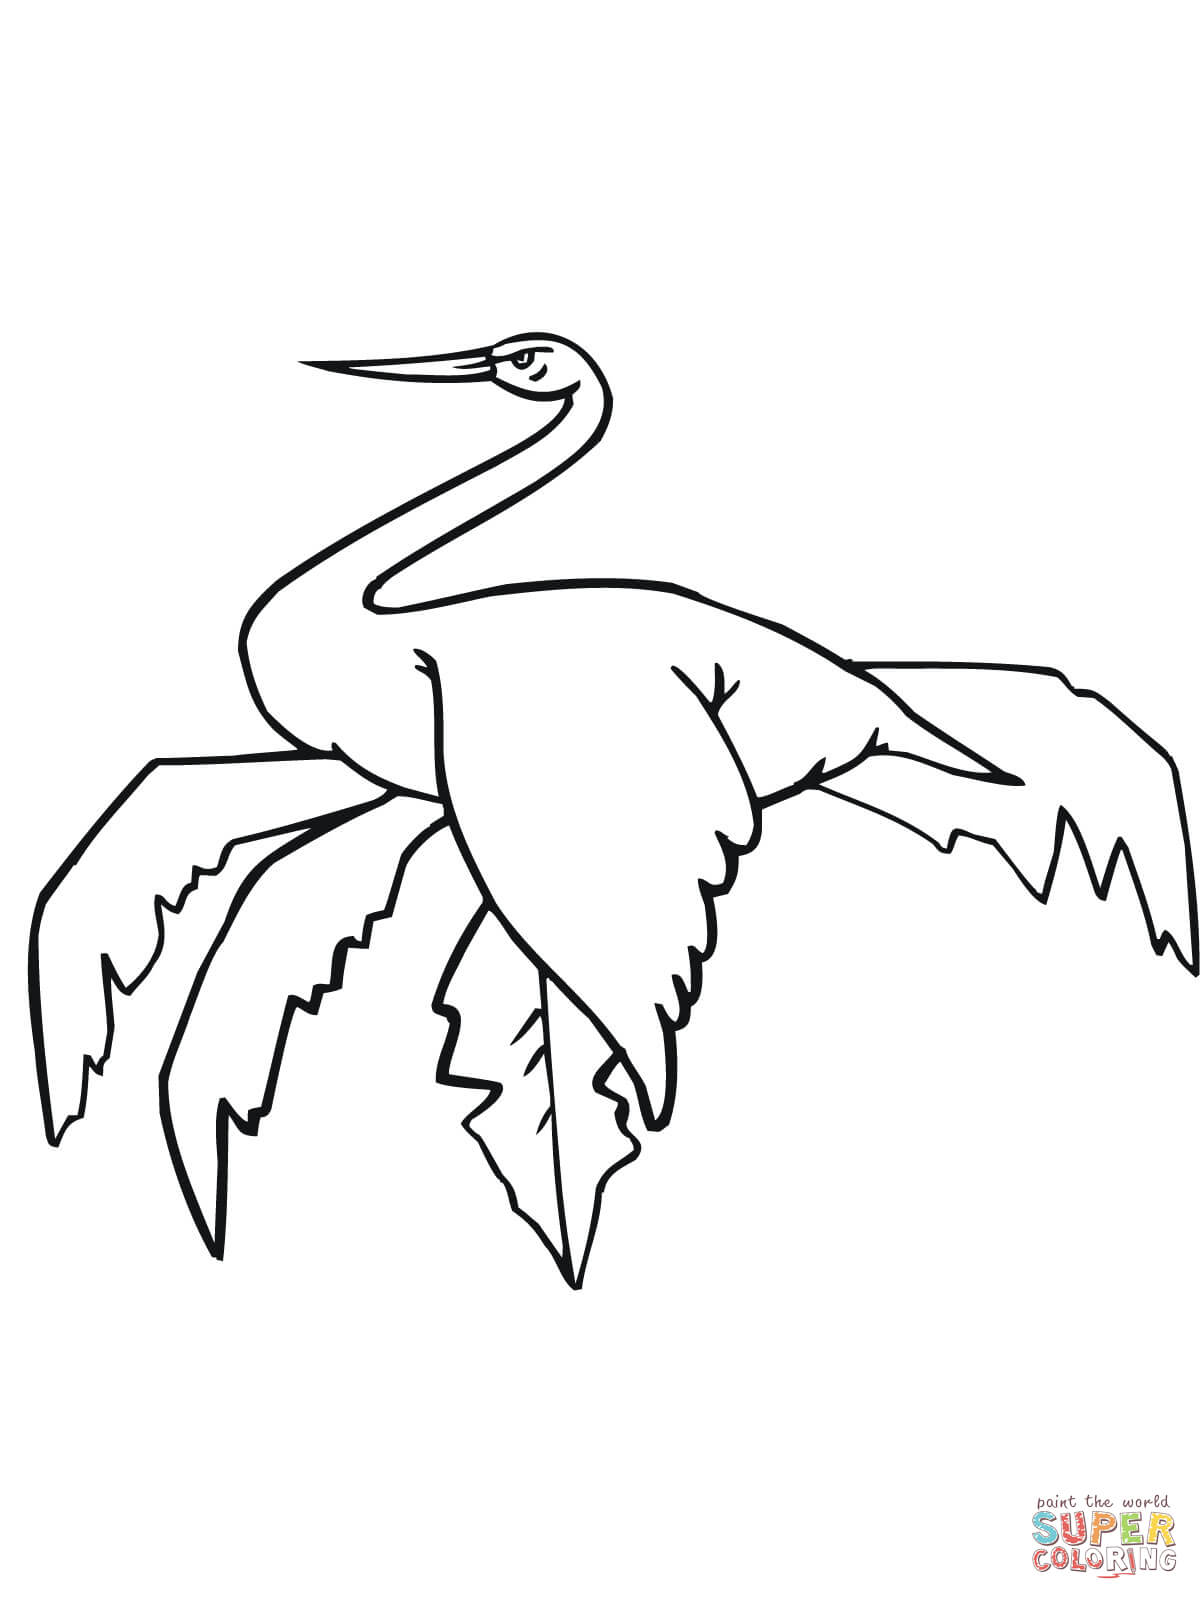 Sitting Stork Coloring Page